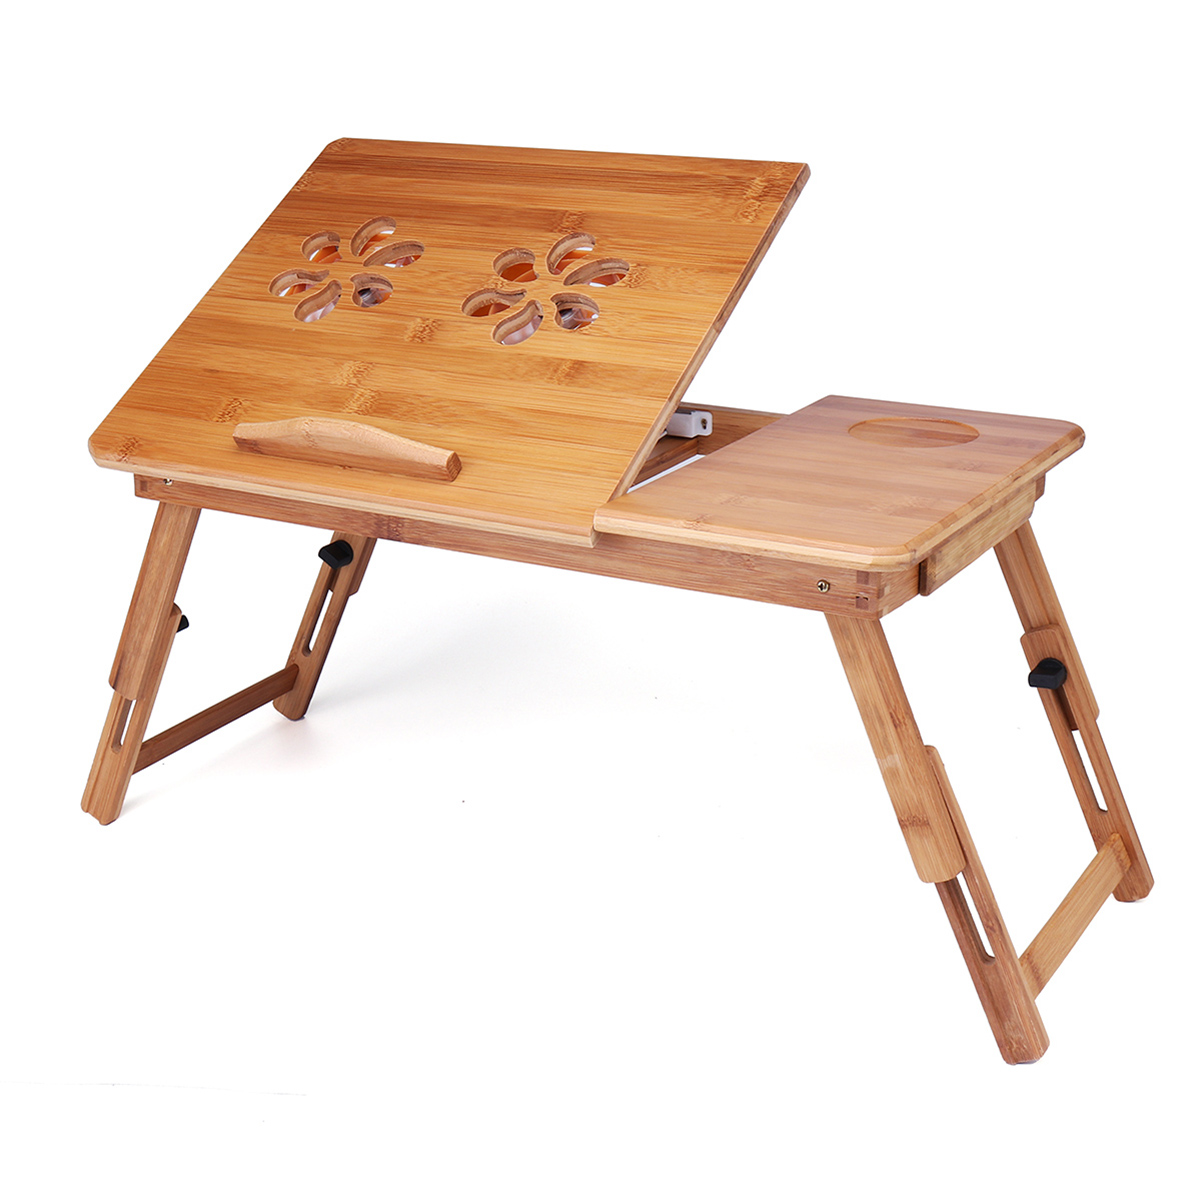 Foldable Laptop Table Natural Bamboo Wood Lap Desk Breakfast Serving Bed Tray Table Stand with Fan by Moaere